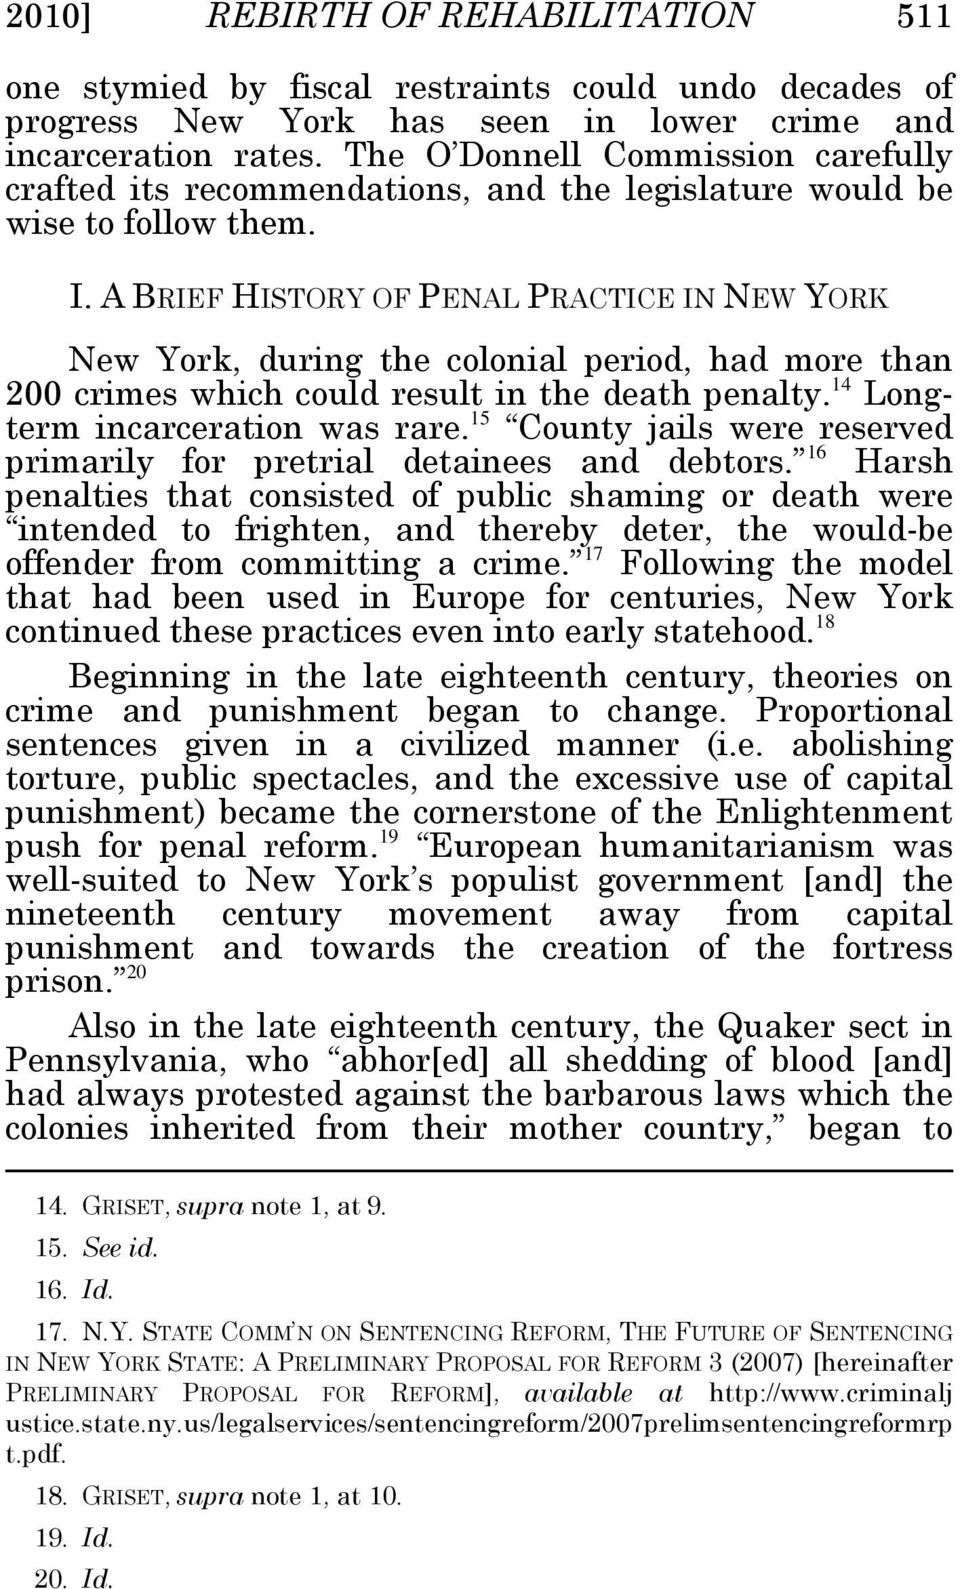 A BRIEF HISTORY OF PENAL PRACTICE IN NEW YORK New York, during the colonial period, had more than 200 crimes which could result in the death penalty. 14 Longterm incarceration was rare.